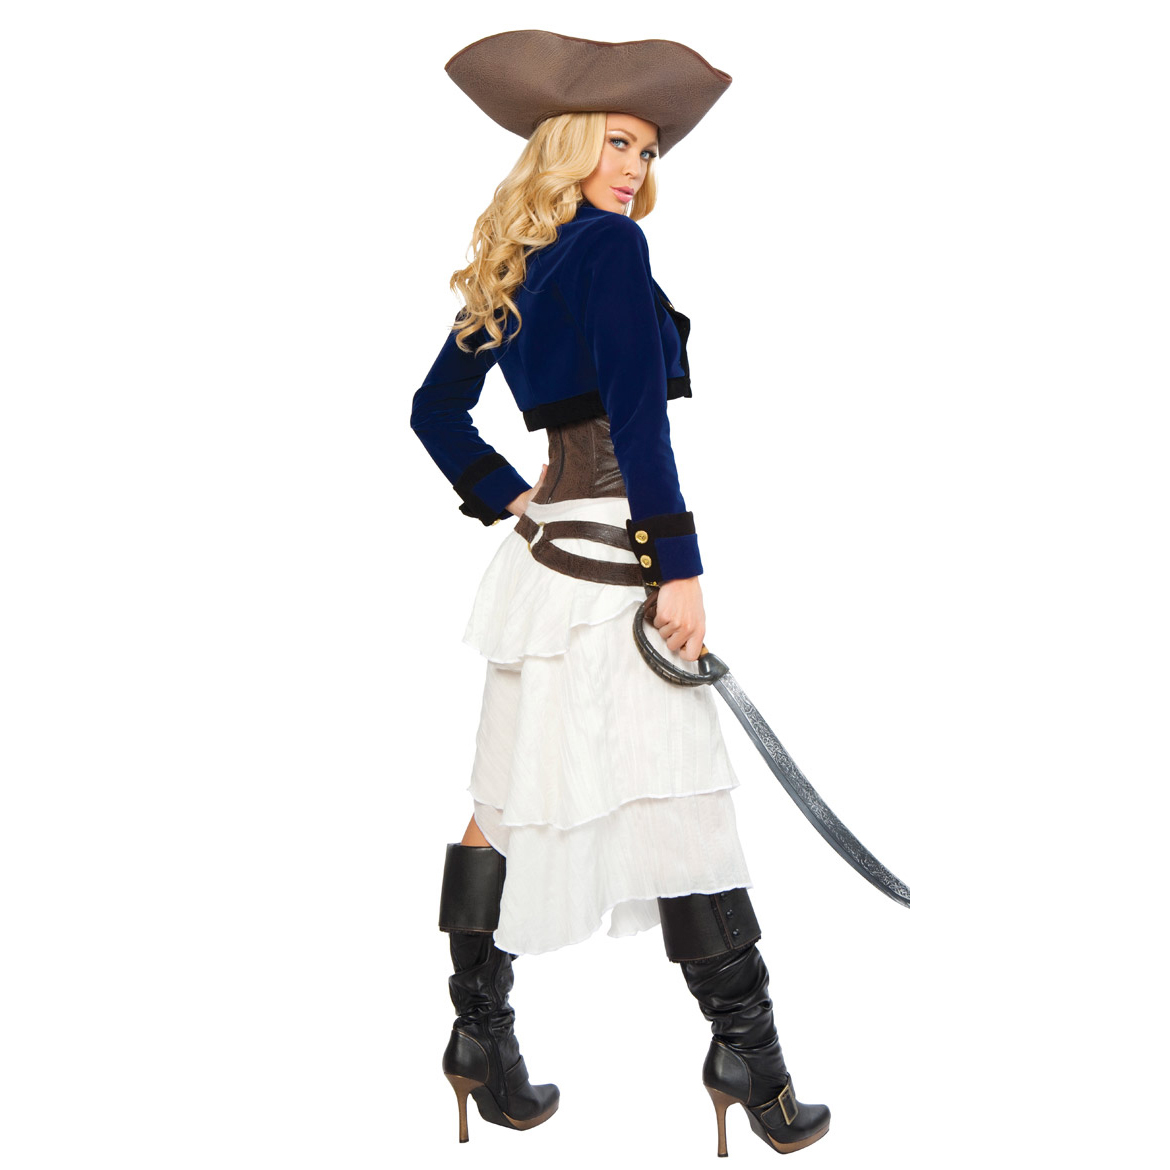 pirates cosplay for girls pirates girl cosplay pirates costume designs pirates costume play  sc 1 st  Creative Cosplay Designs & 13 Pirates Girl Cosplay Costume Designs - Creative Cosplay Designs